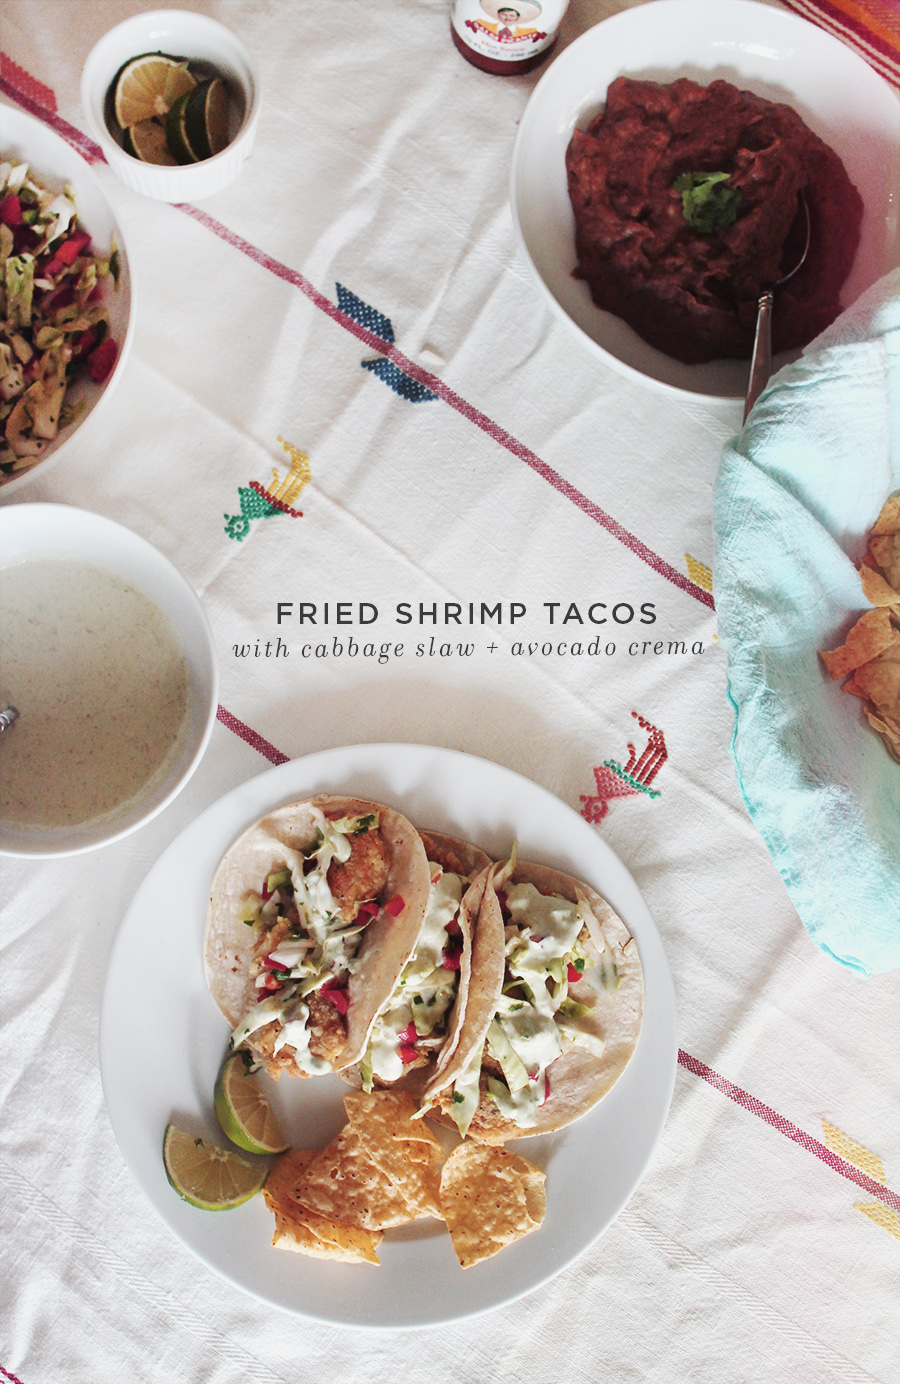 fried shrimp tacos with cabbage slaw | via almost makes perfect